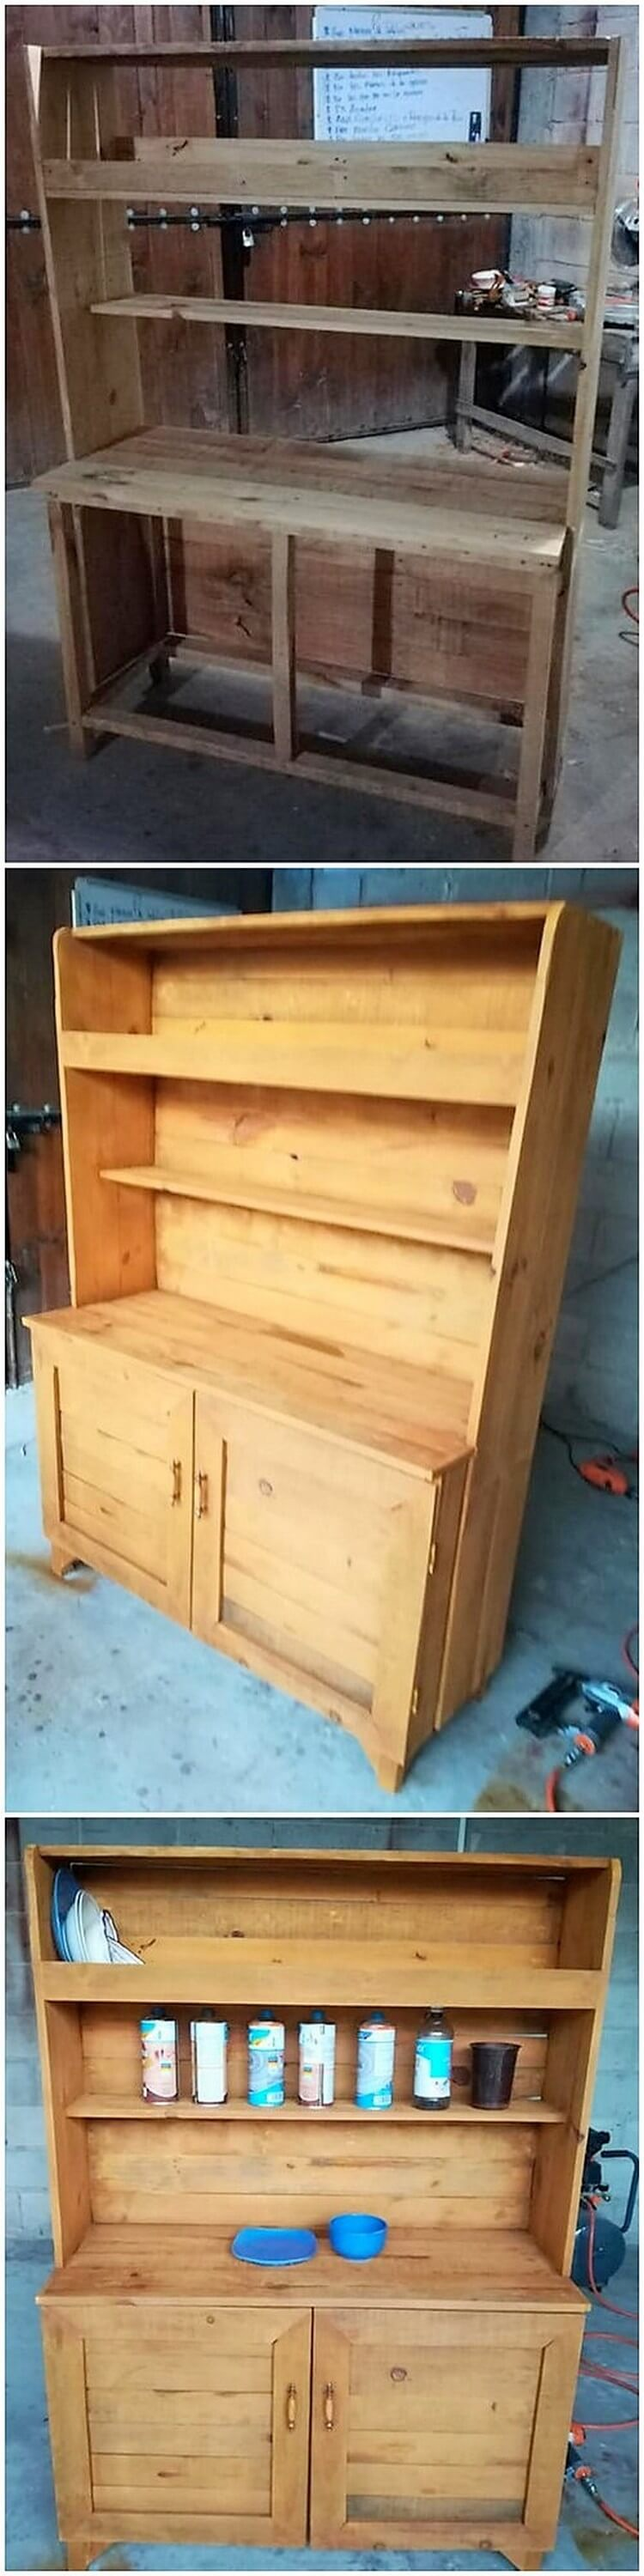 Pallet Cabinet or Cupboard